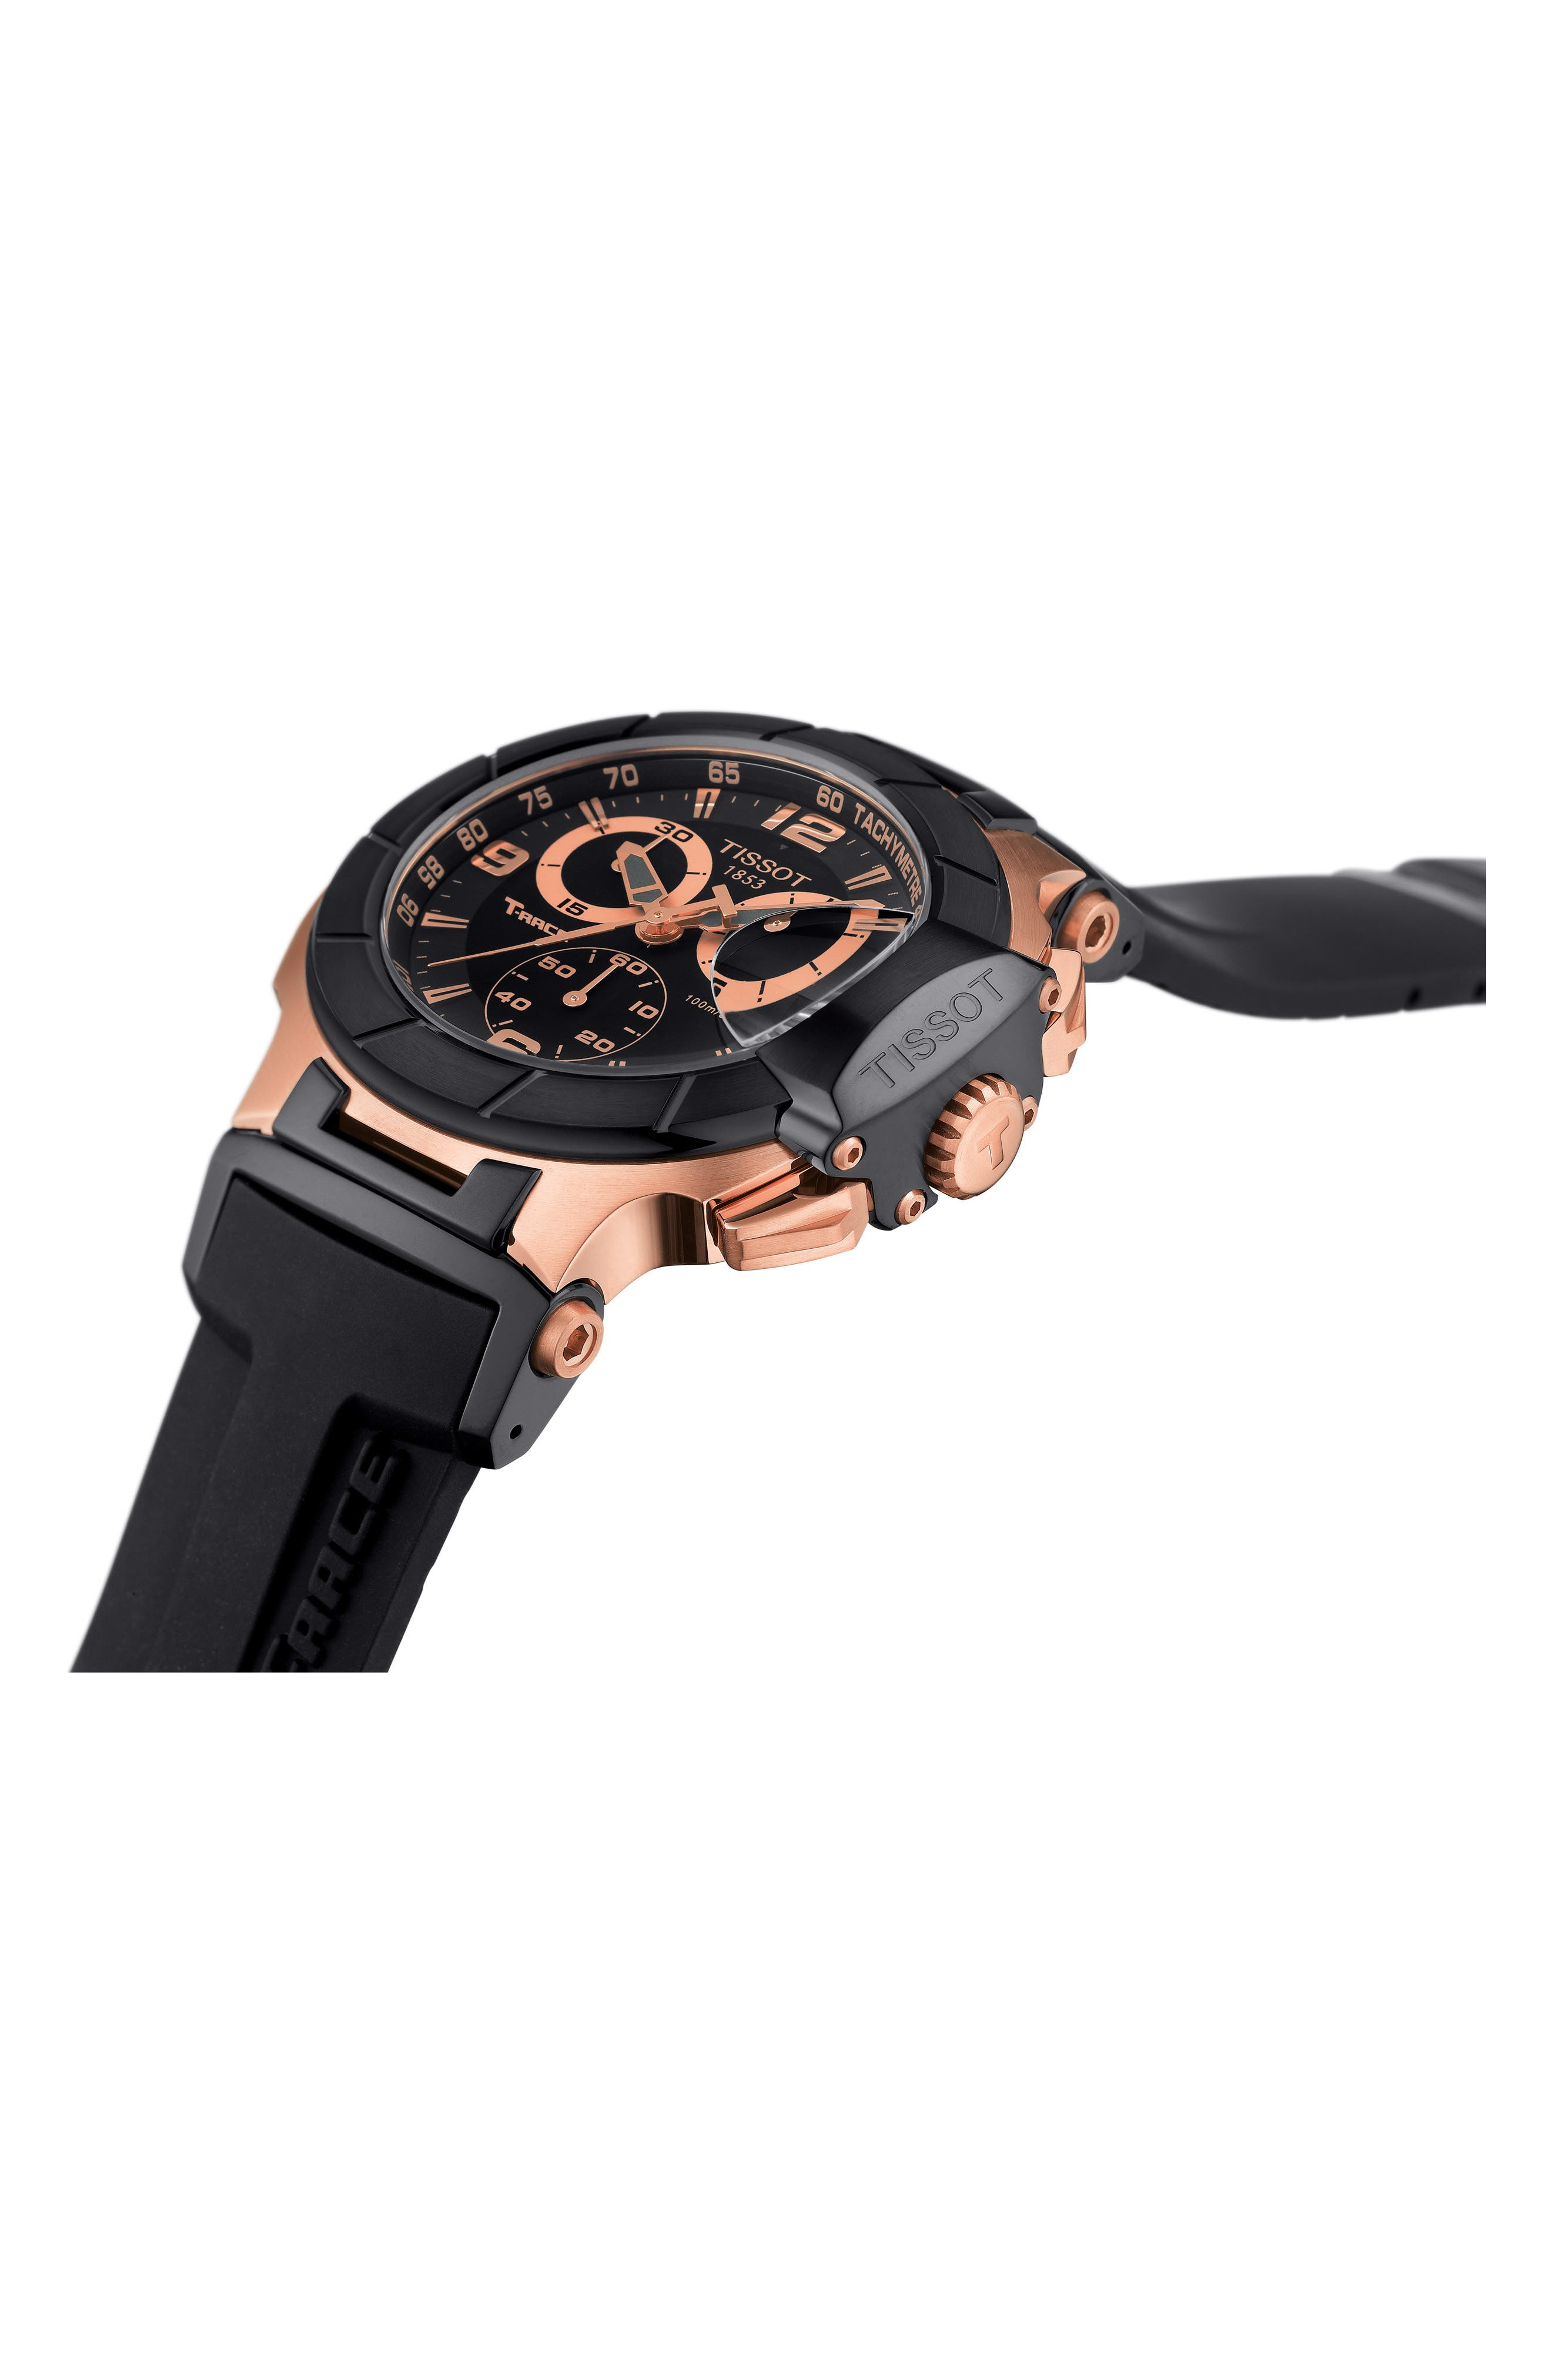 TISSOT, T-Race Chronograph Silicone Strap Watch, 50mm, Alternate thumbnail 3, color, BLACK/ ROSE GOLD